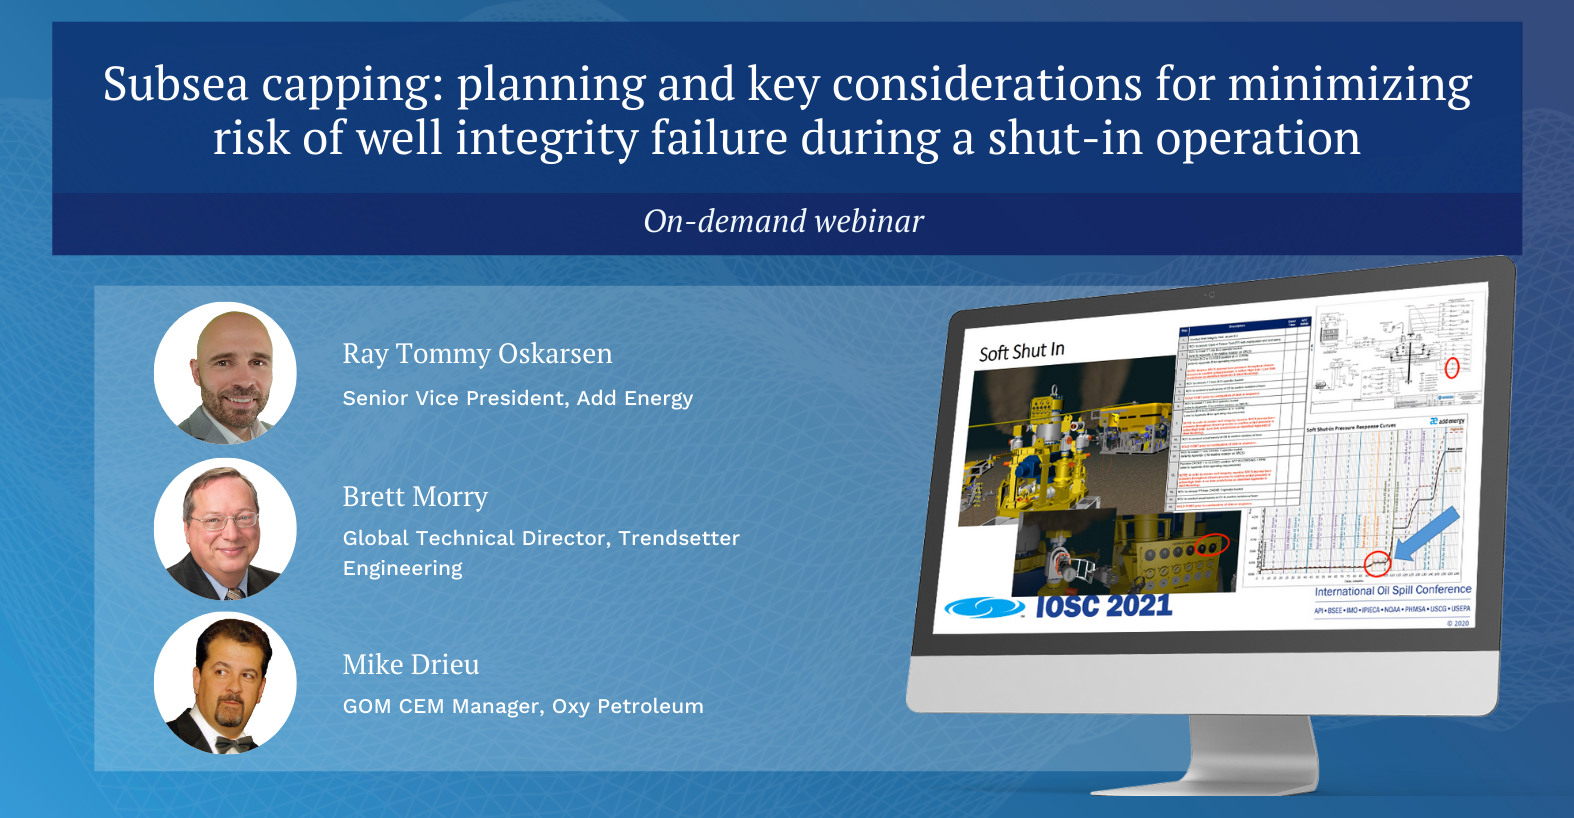 Subsea capping:planning and key considerations for minimizing risk of well integrity failure during a shut-in operation